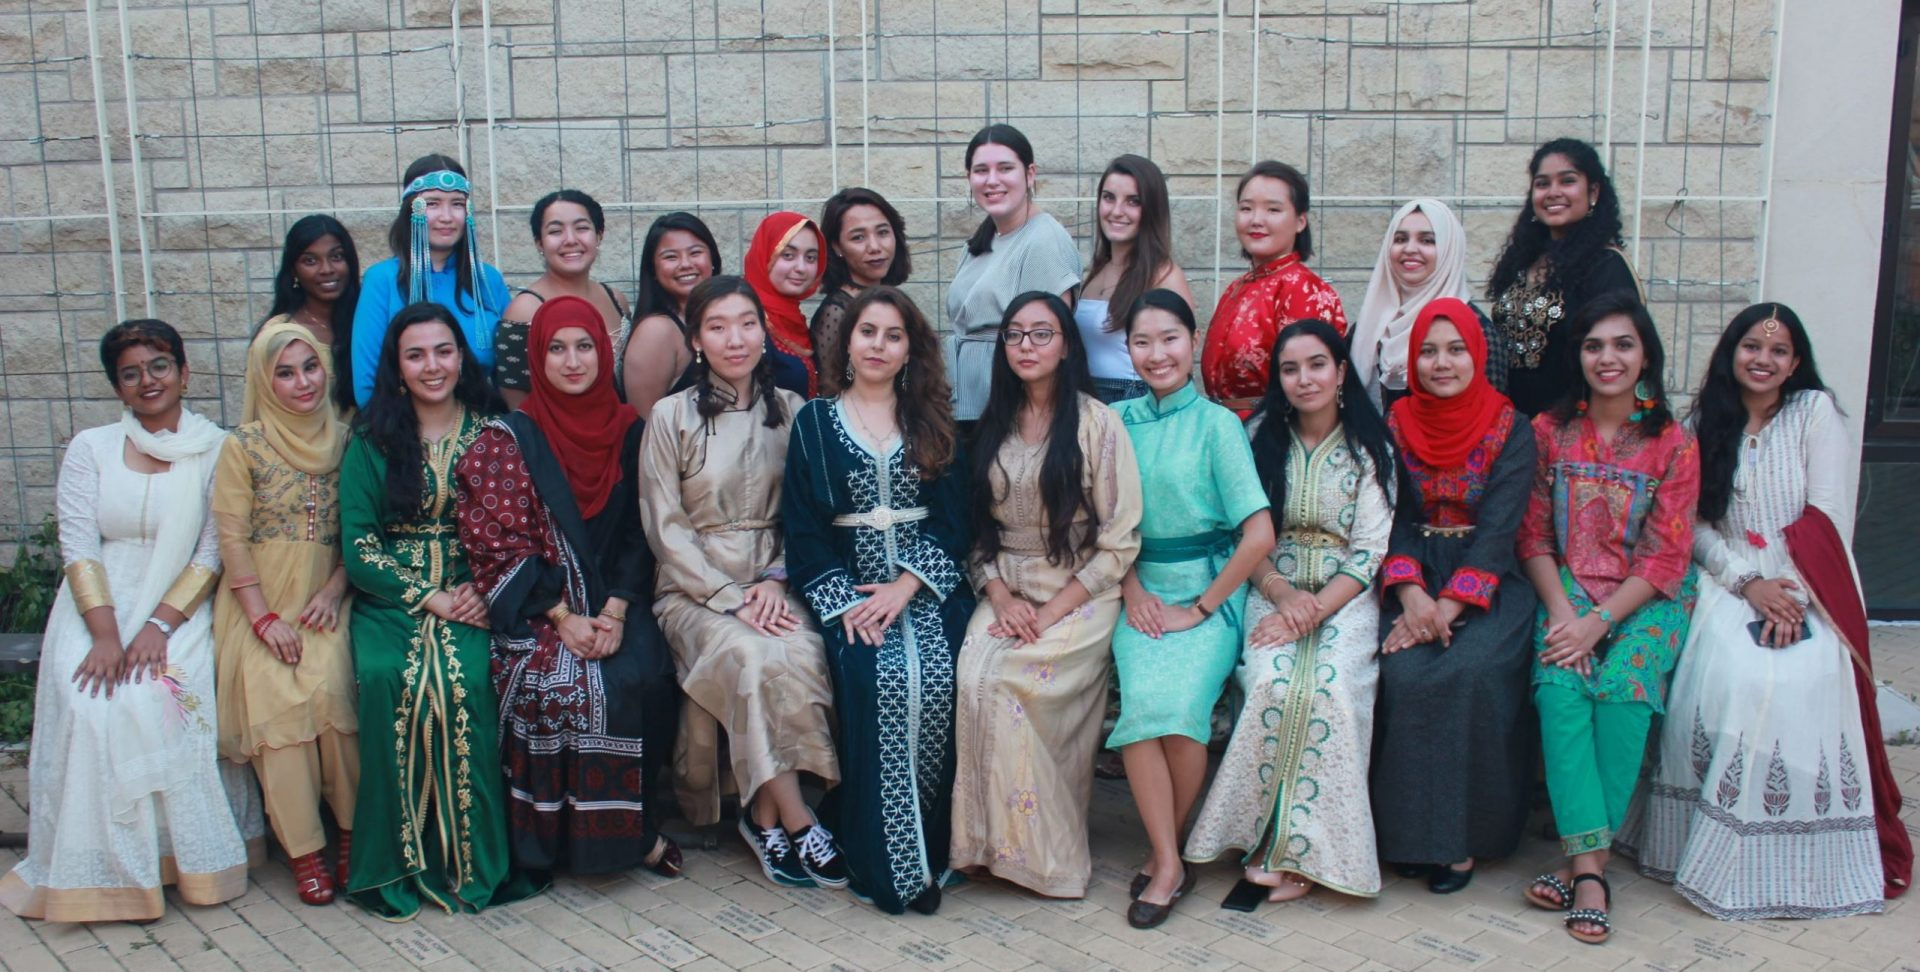 Women Wednesday: Meet the women from Morocco